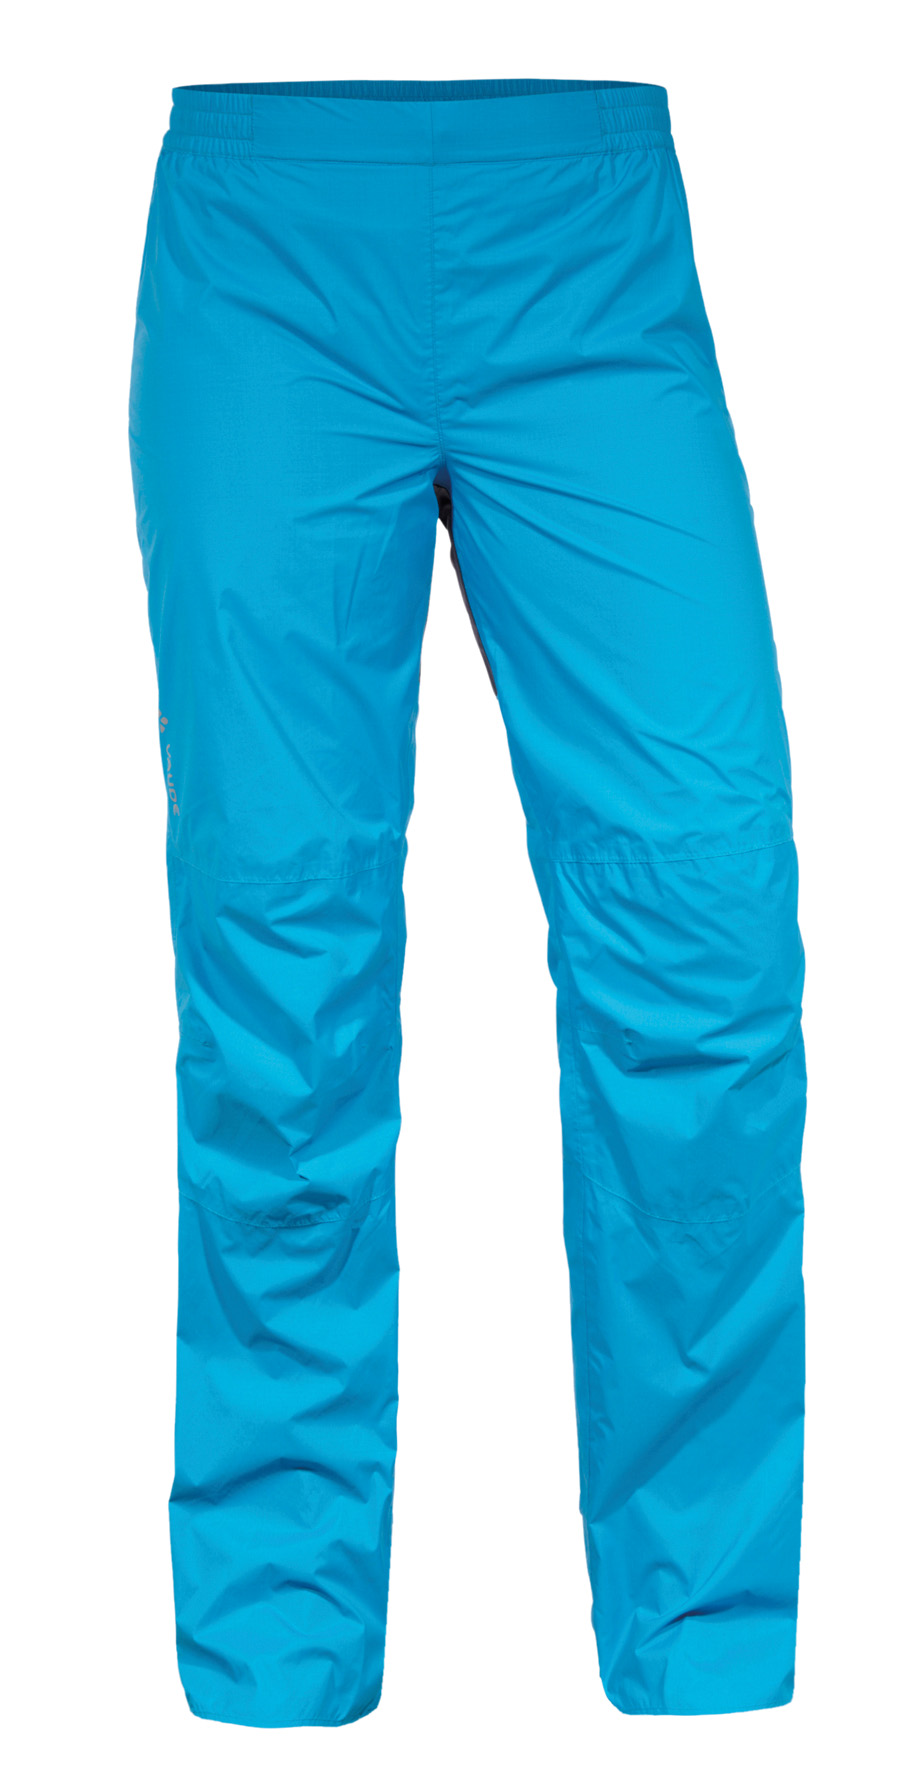 Women´s Drop Pants II teal blue Größe 36 - schneider-sports